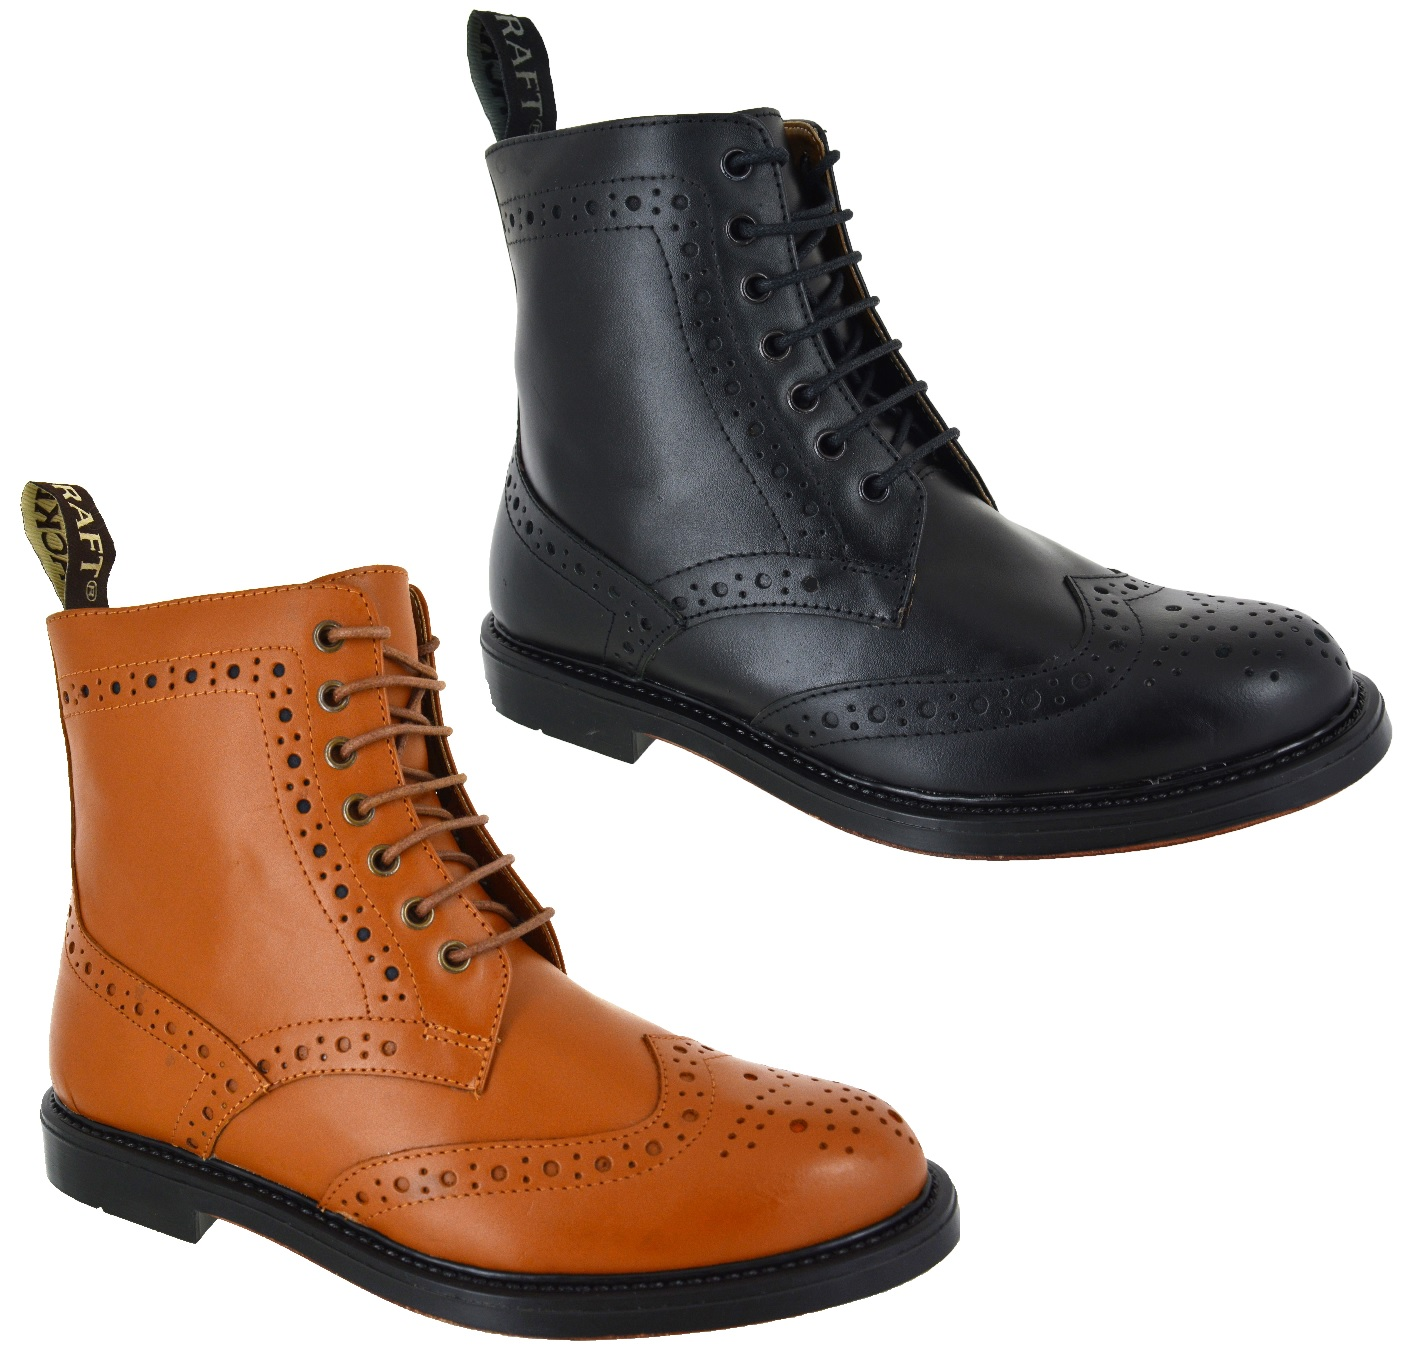 Bridge the corporate-to-casual gap with polished Chelsea or lace-up boots which work well with slim fitting jeans and tees or sharp trousers and dress shirts. Dress boots in supple leather or suede complement your professional attire.